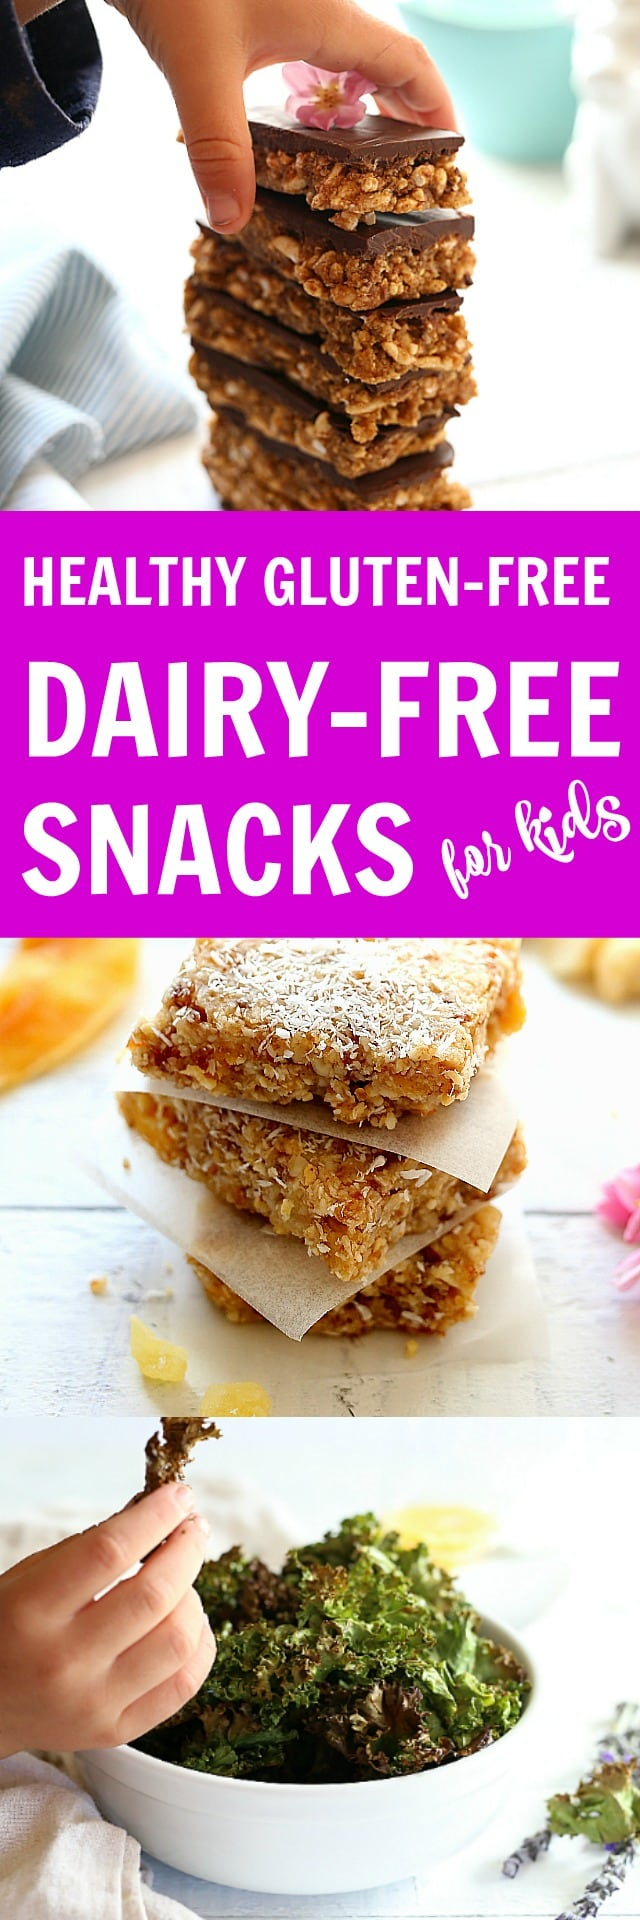 Here's the scoop on what to make! The most delicious healthy, dairy free, and gluten free snacks for kids! Tips and recipes that are easy, non processed and will give children the sustainable energy they need for growing!